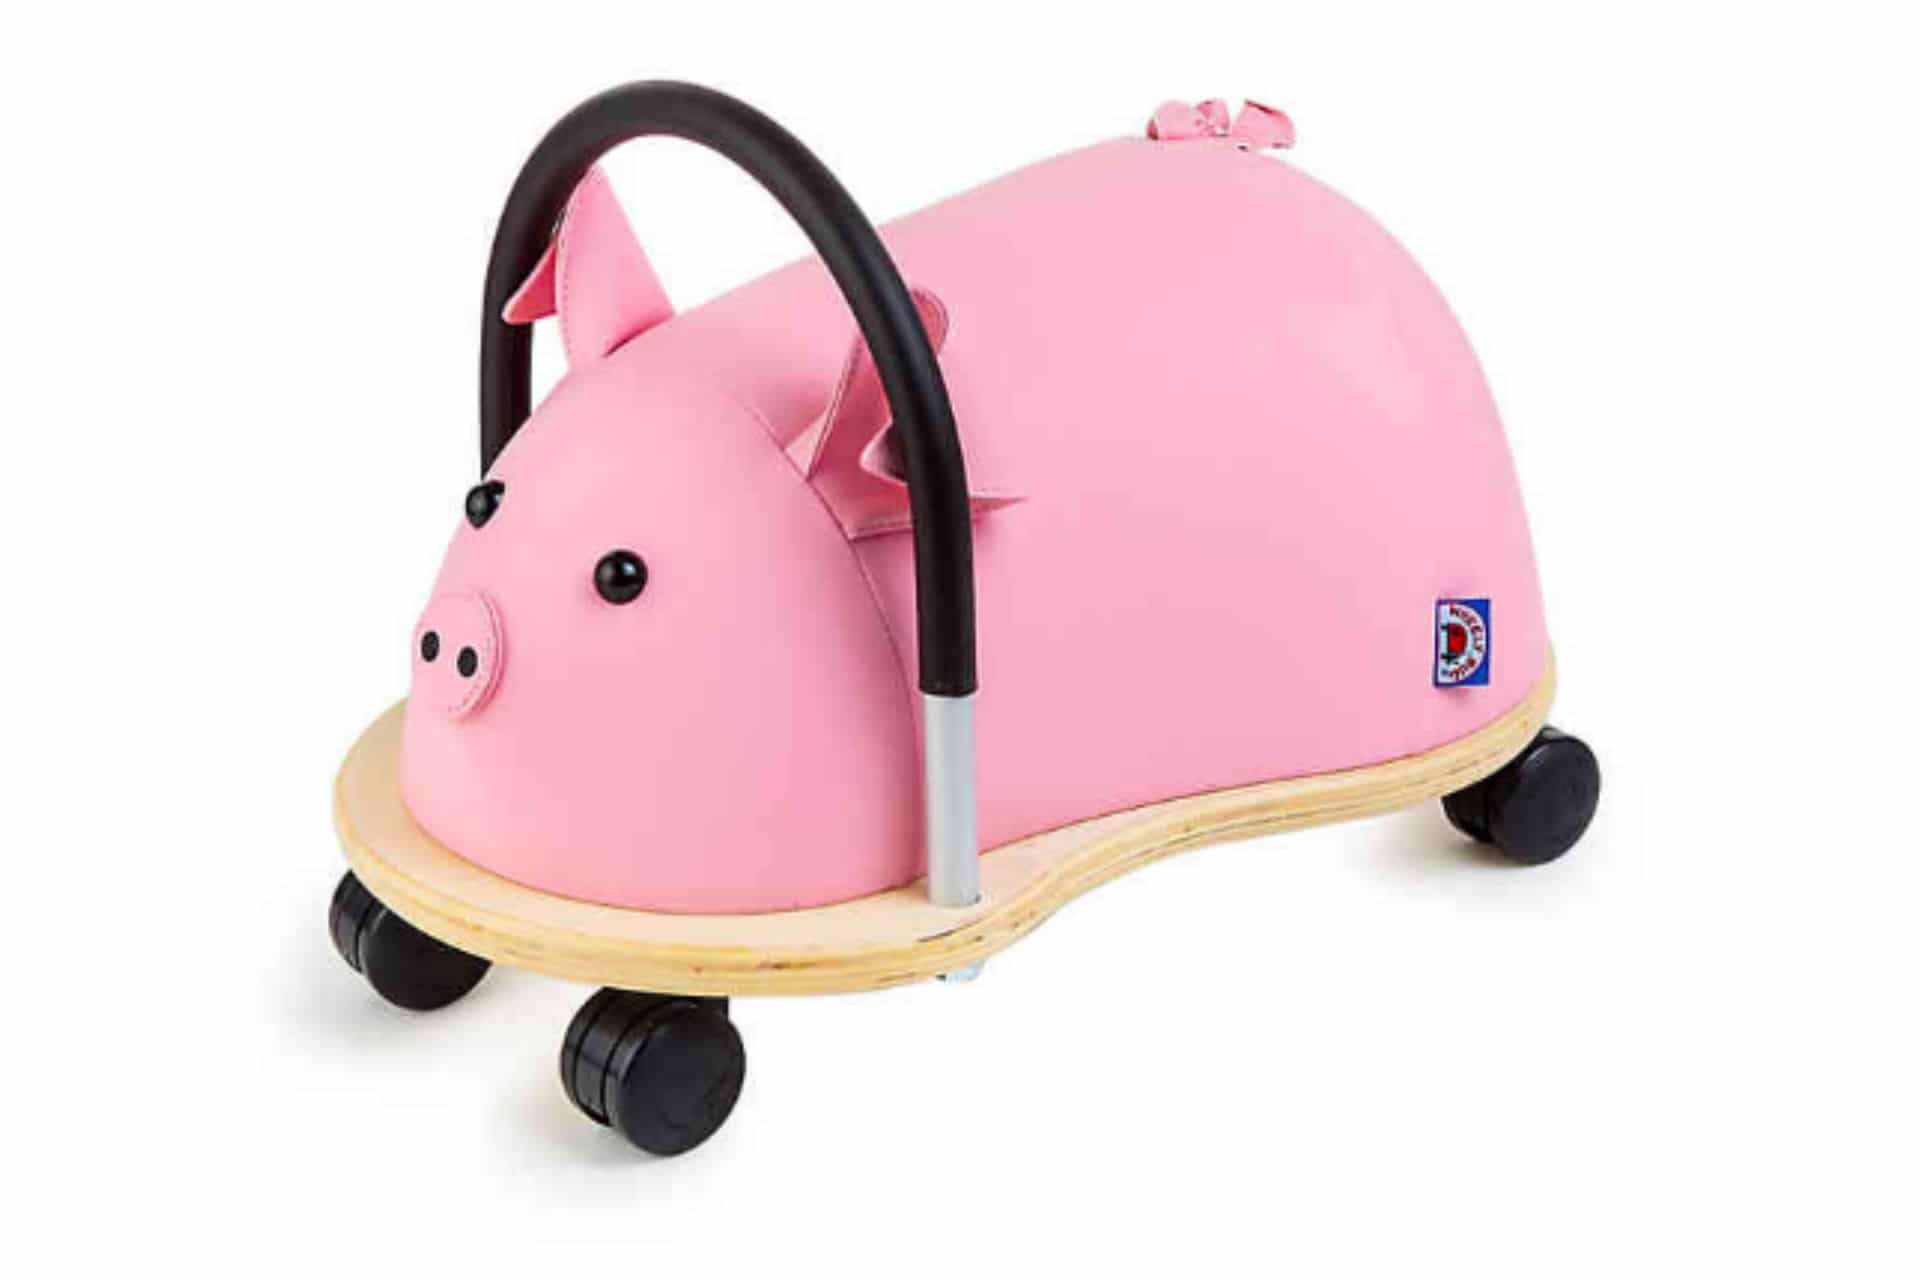 pink pig ride-on toy